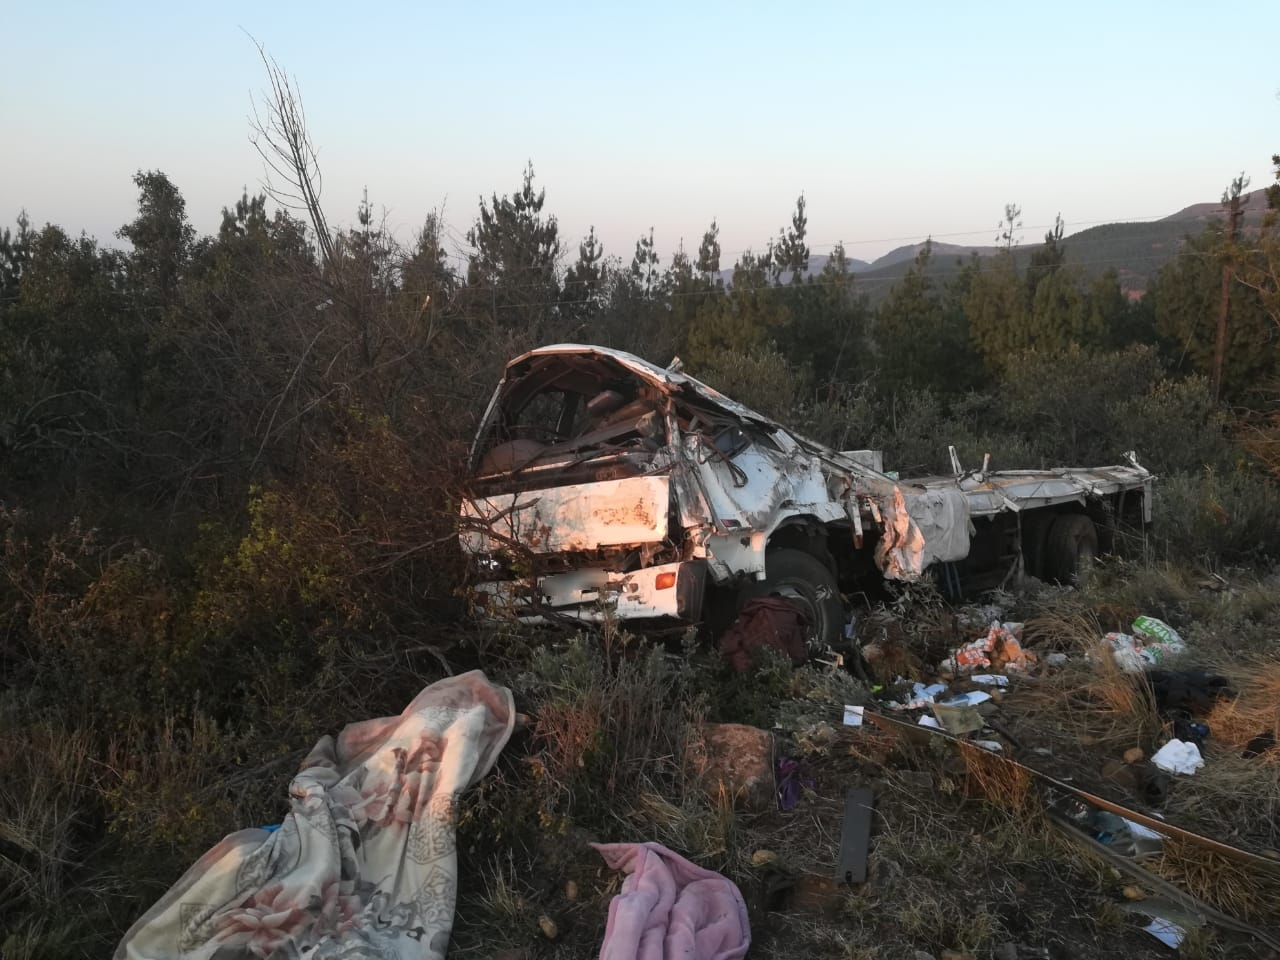 www arrivealive co za//ckfinder/userfiles/images/P